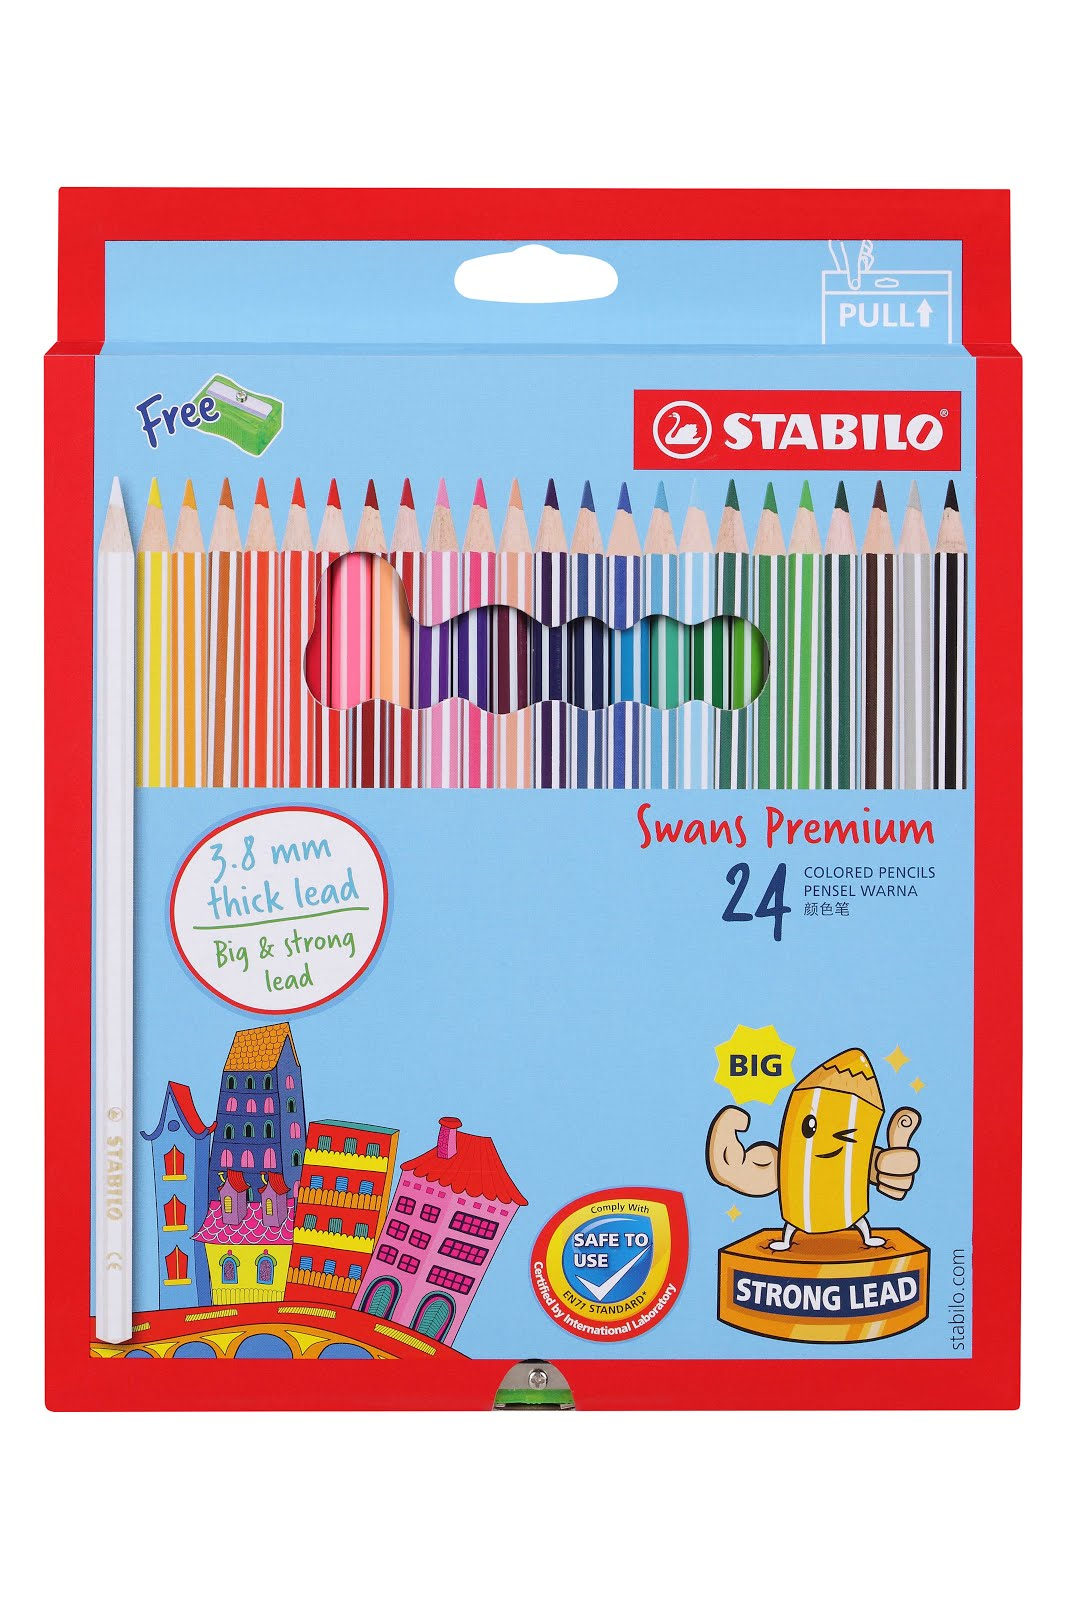 Choosing the Right STABILO Swans Colored Pencils for Your ...